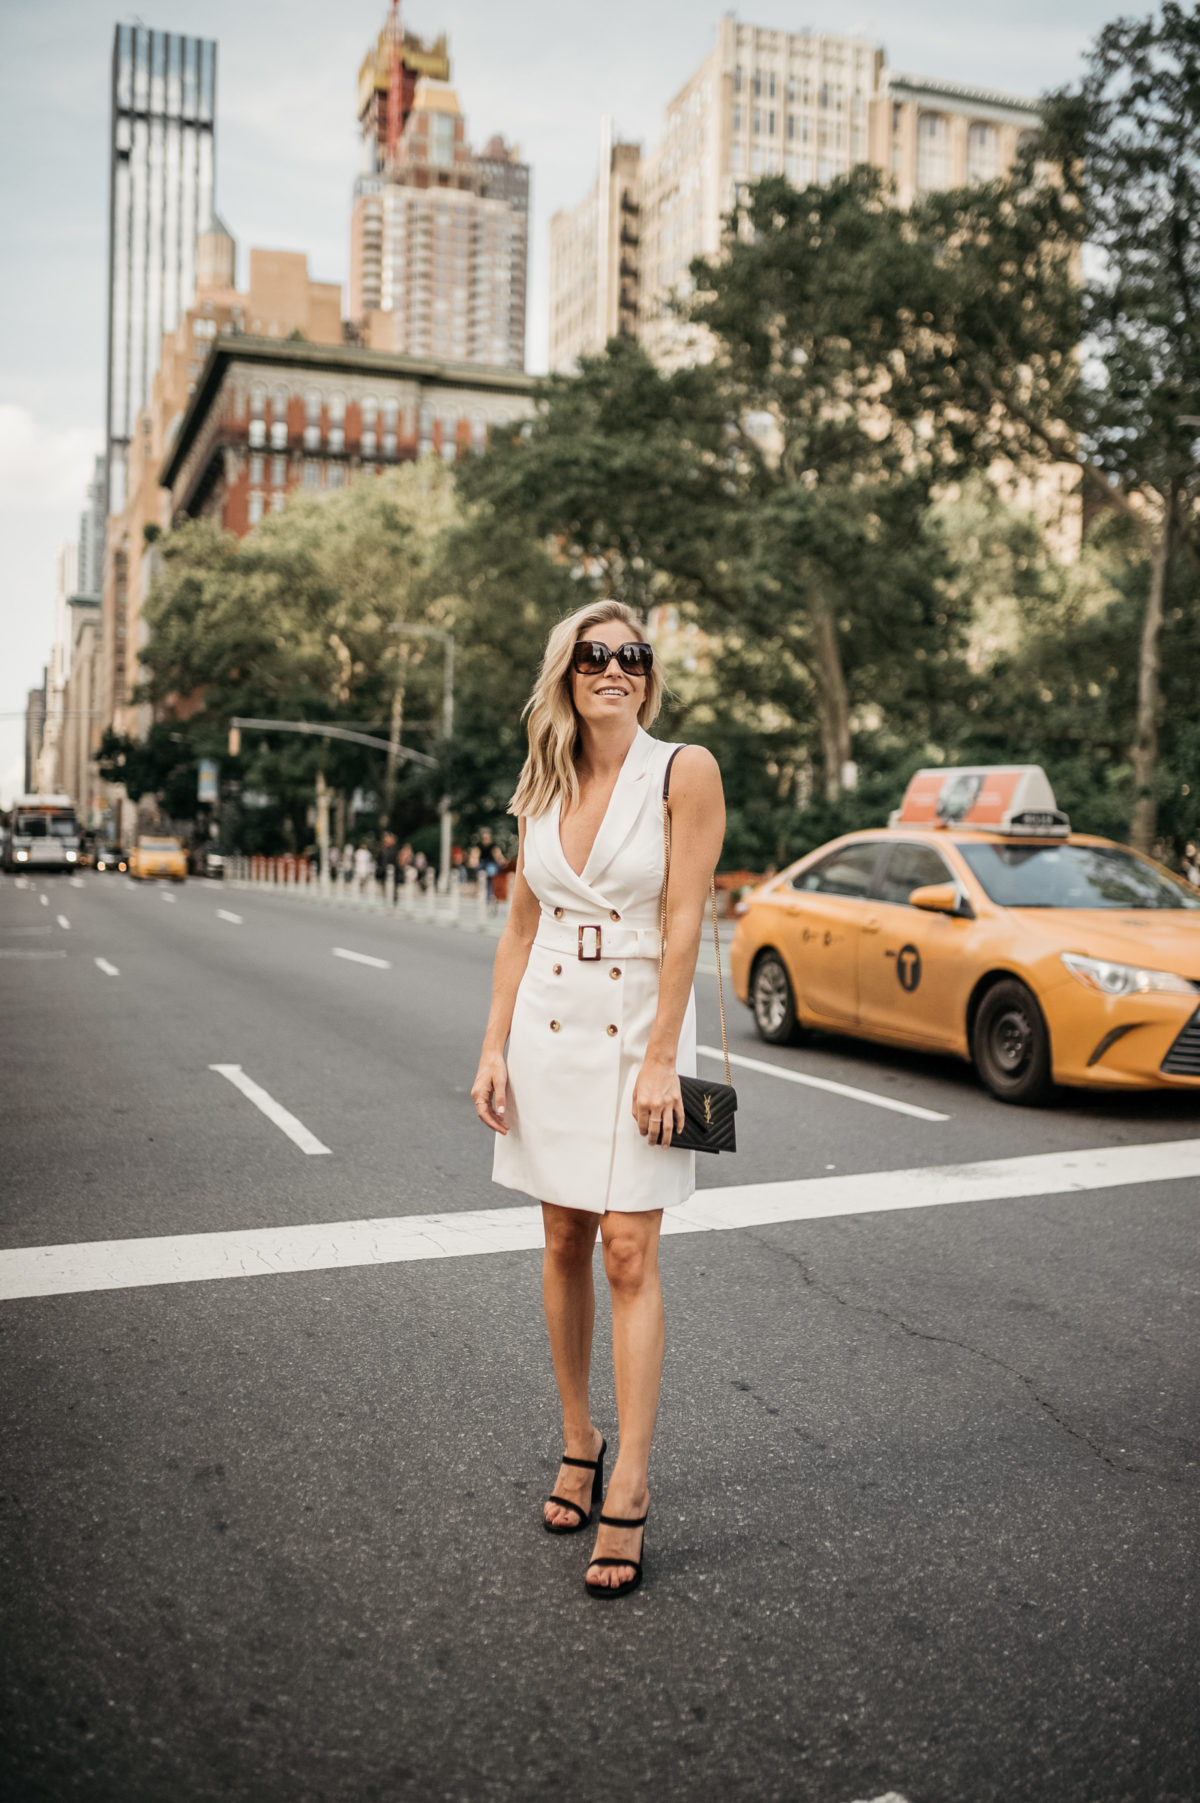 Suit dress - How to  overcome feeling stuck in your career - One Small Blonde